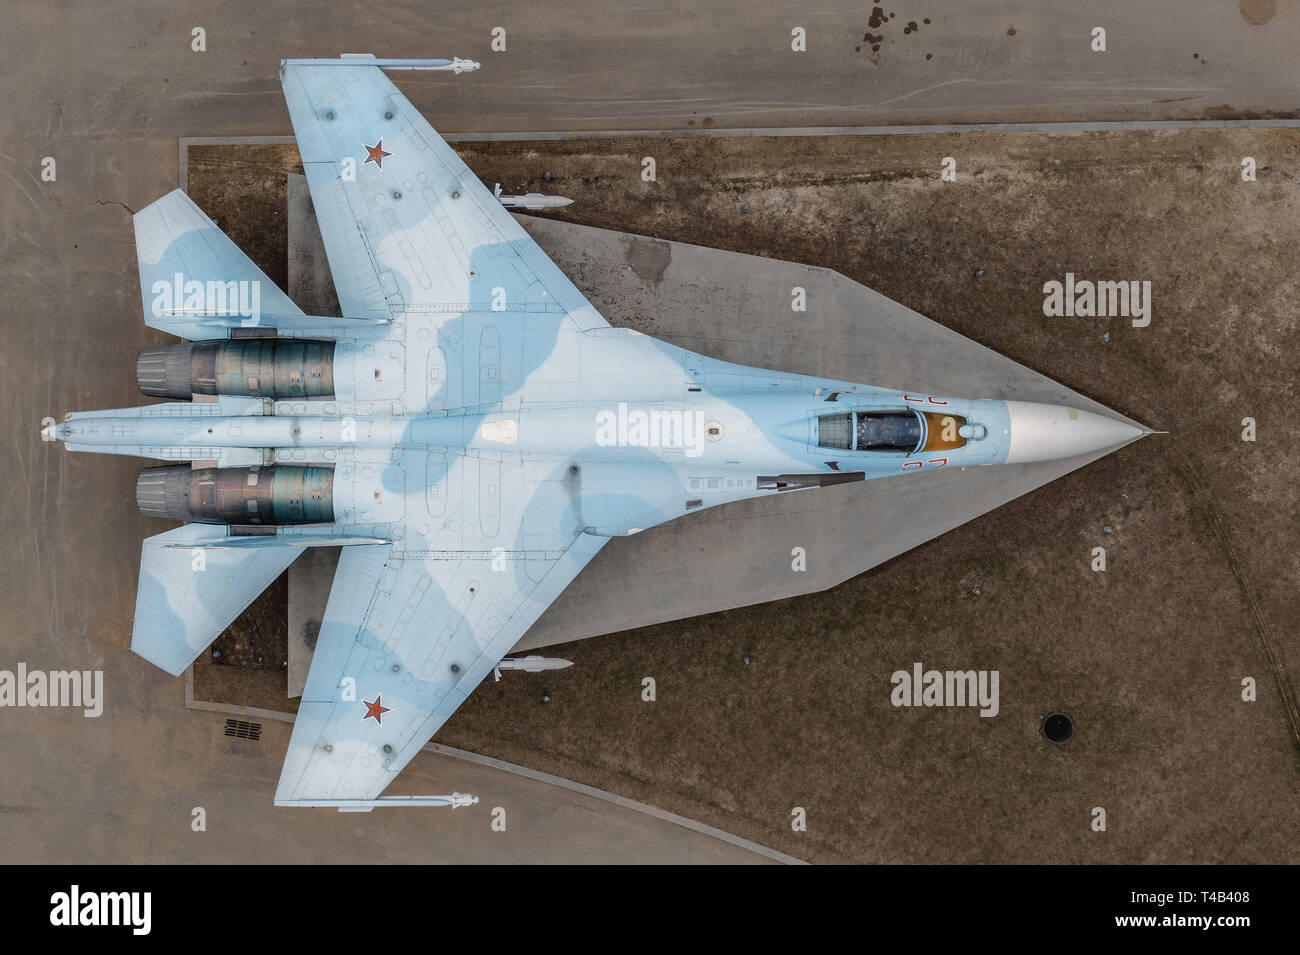 Decommissioned Sukhoi Su-27 from the 237 TsPAT on static exposure in VDNKh. - Stock Image